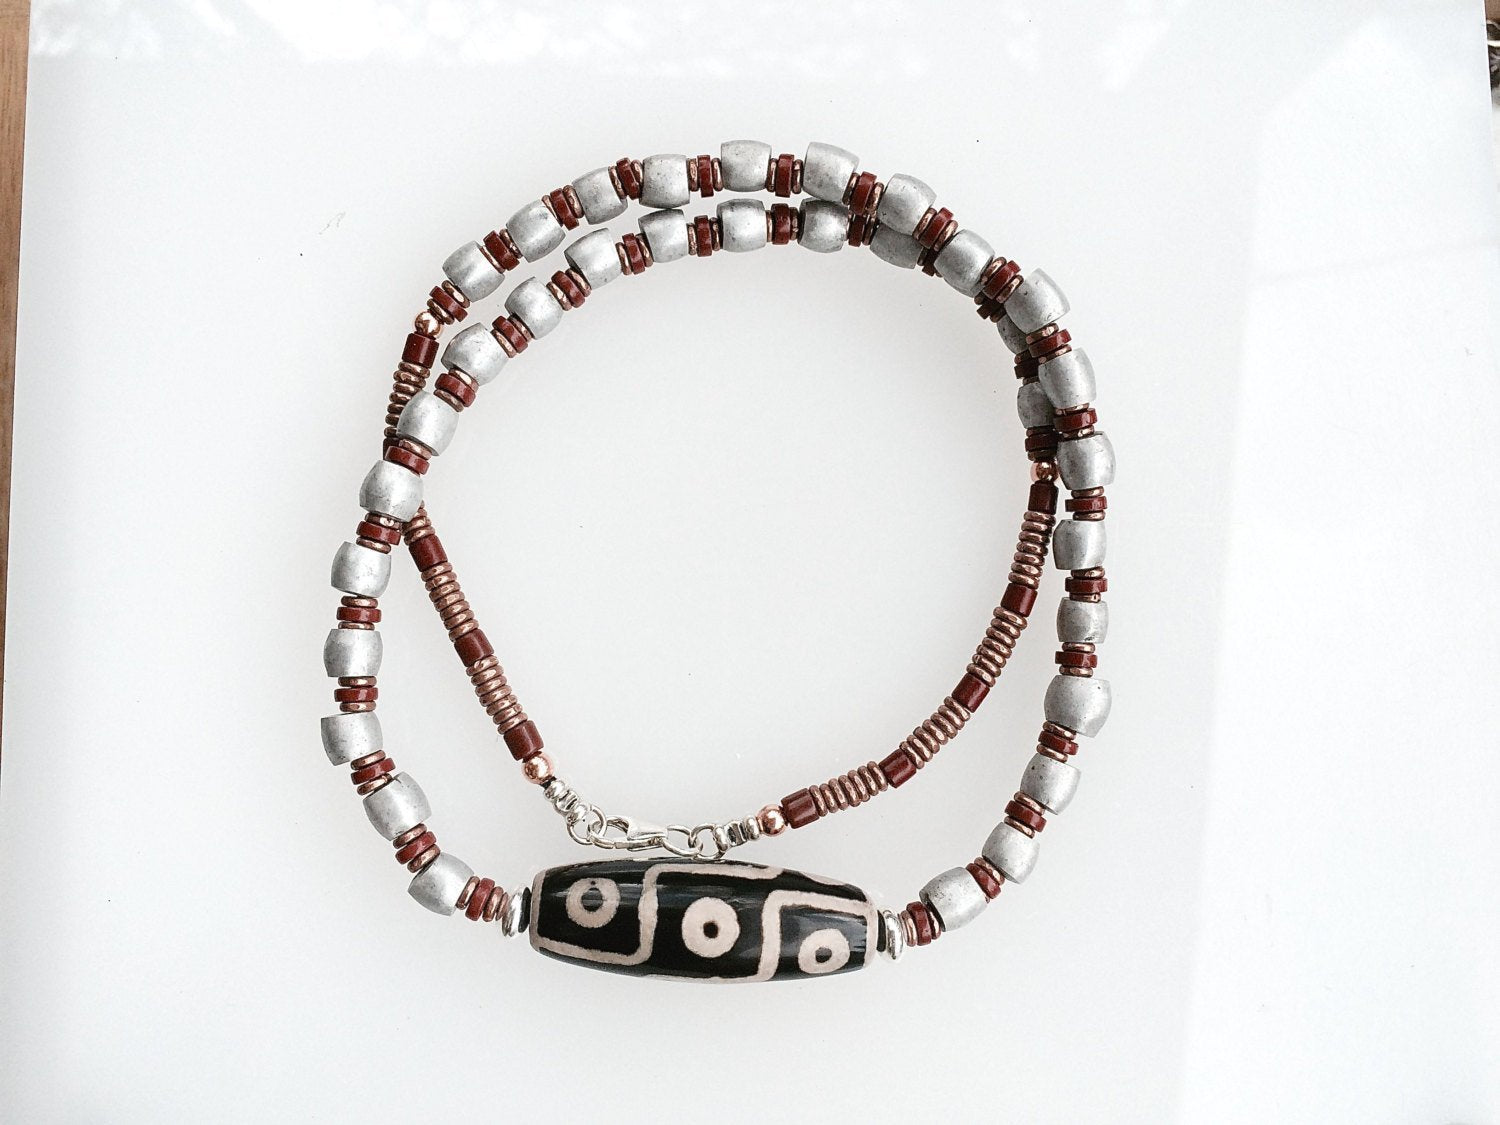 African Trade Bead Necklace with Ethiopian Aluminum Spacers & Dzi Bead